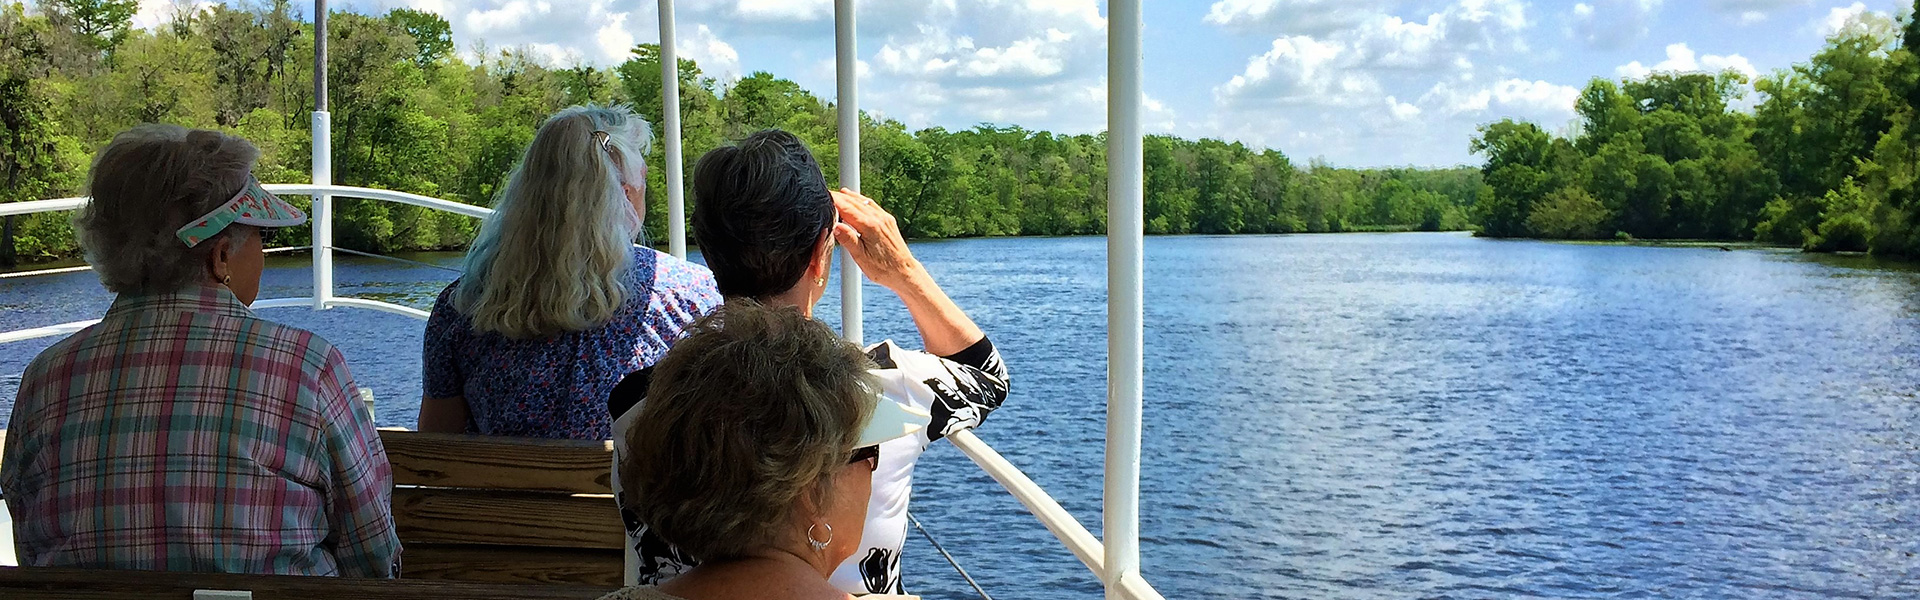 sightseeing Cape Fear River